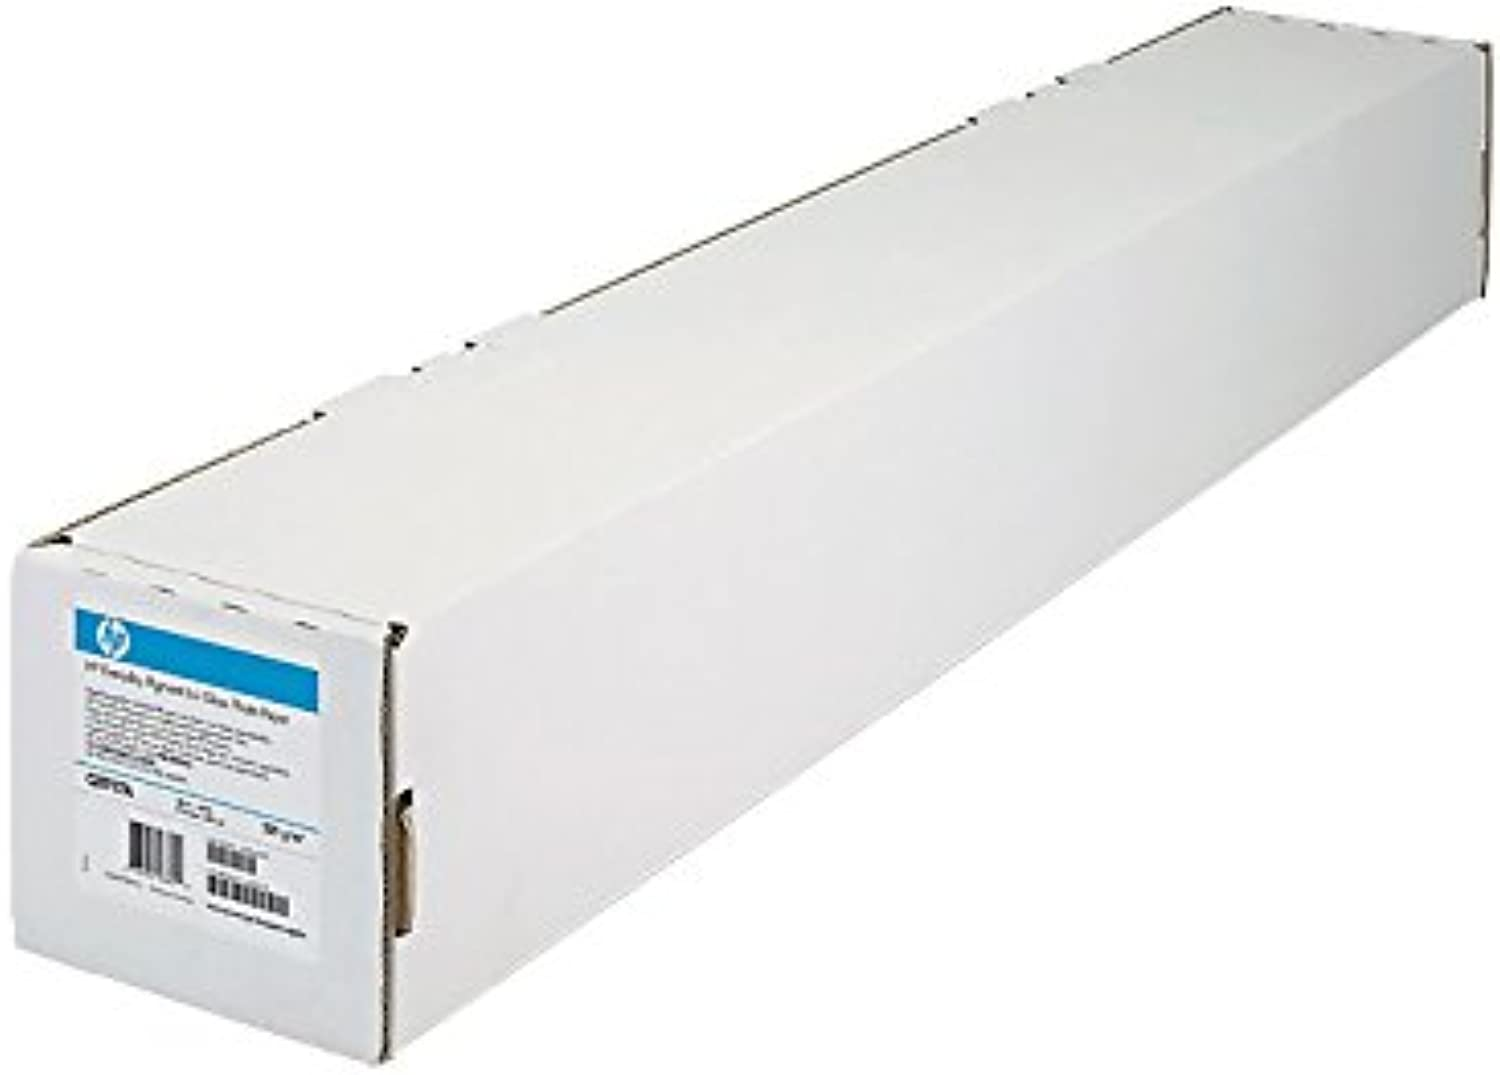 HP Clear Film-610 mm mm mm x 22.9 m (24 in x 75 ft) B008AUEJHM    | Düsseldorf Online Shop